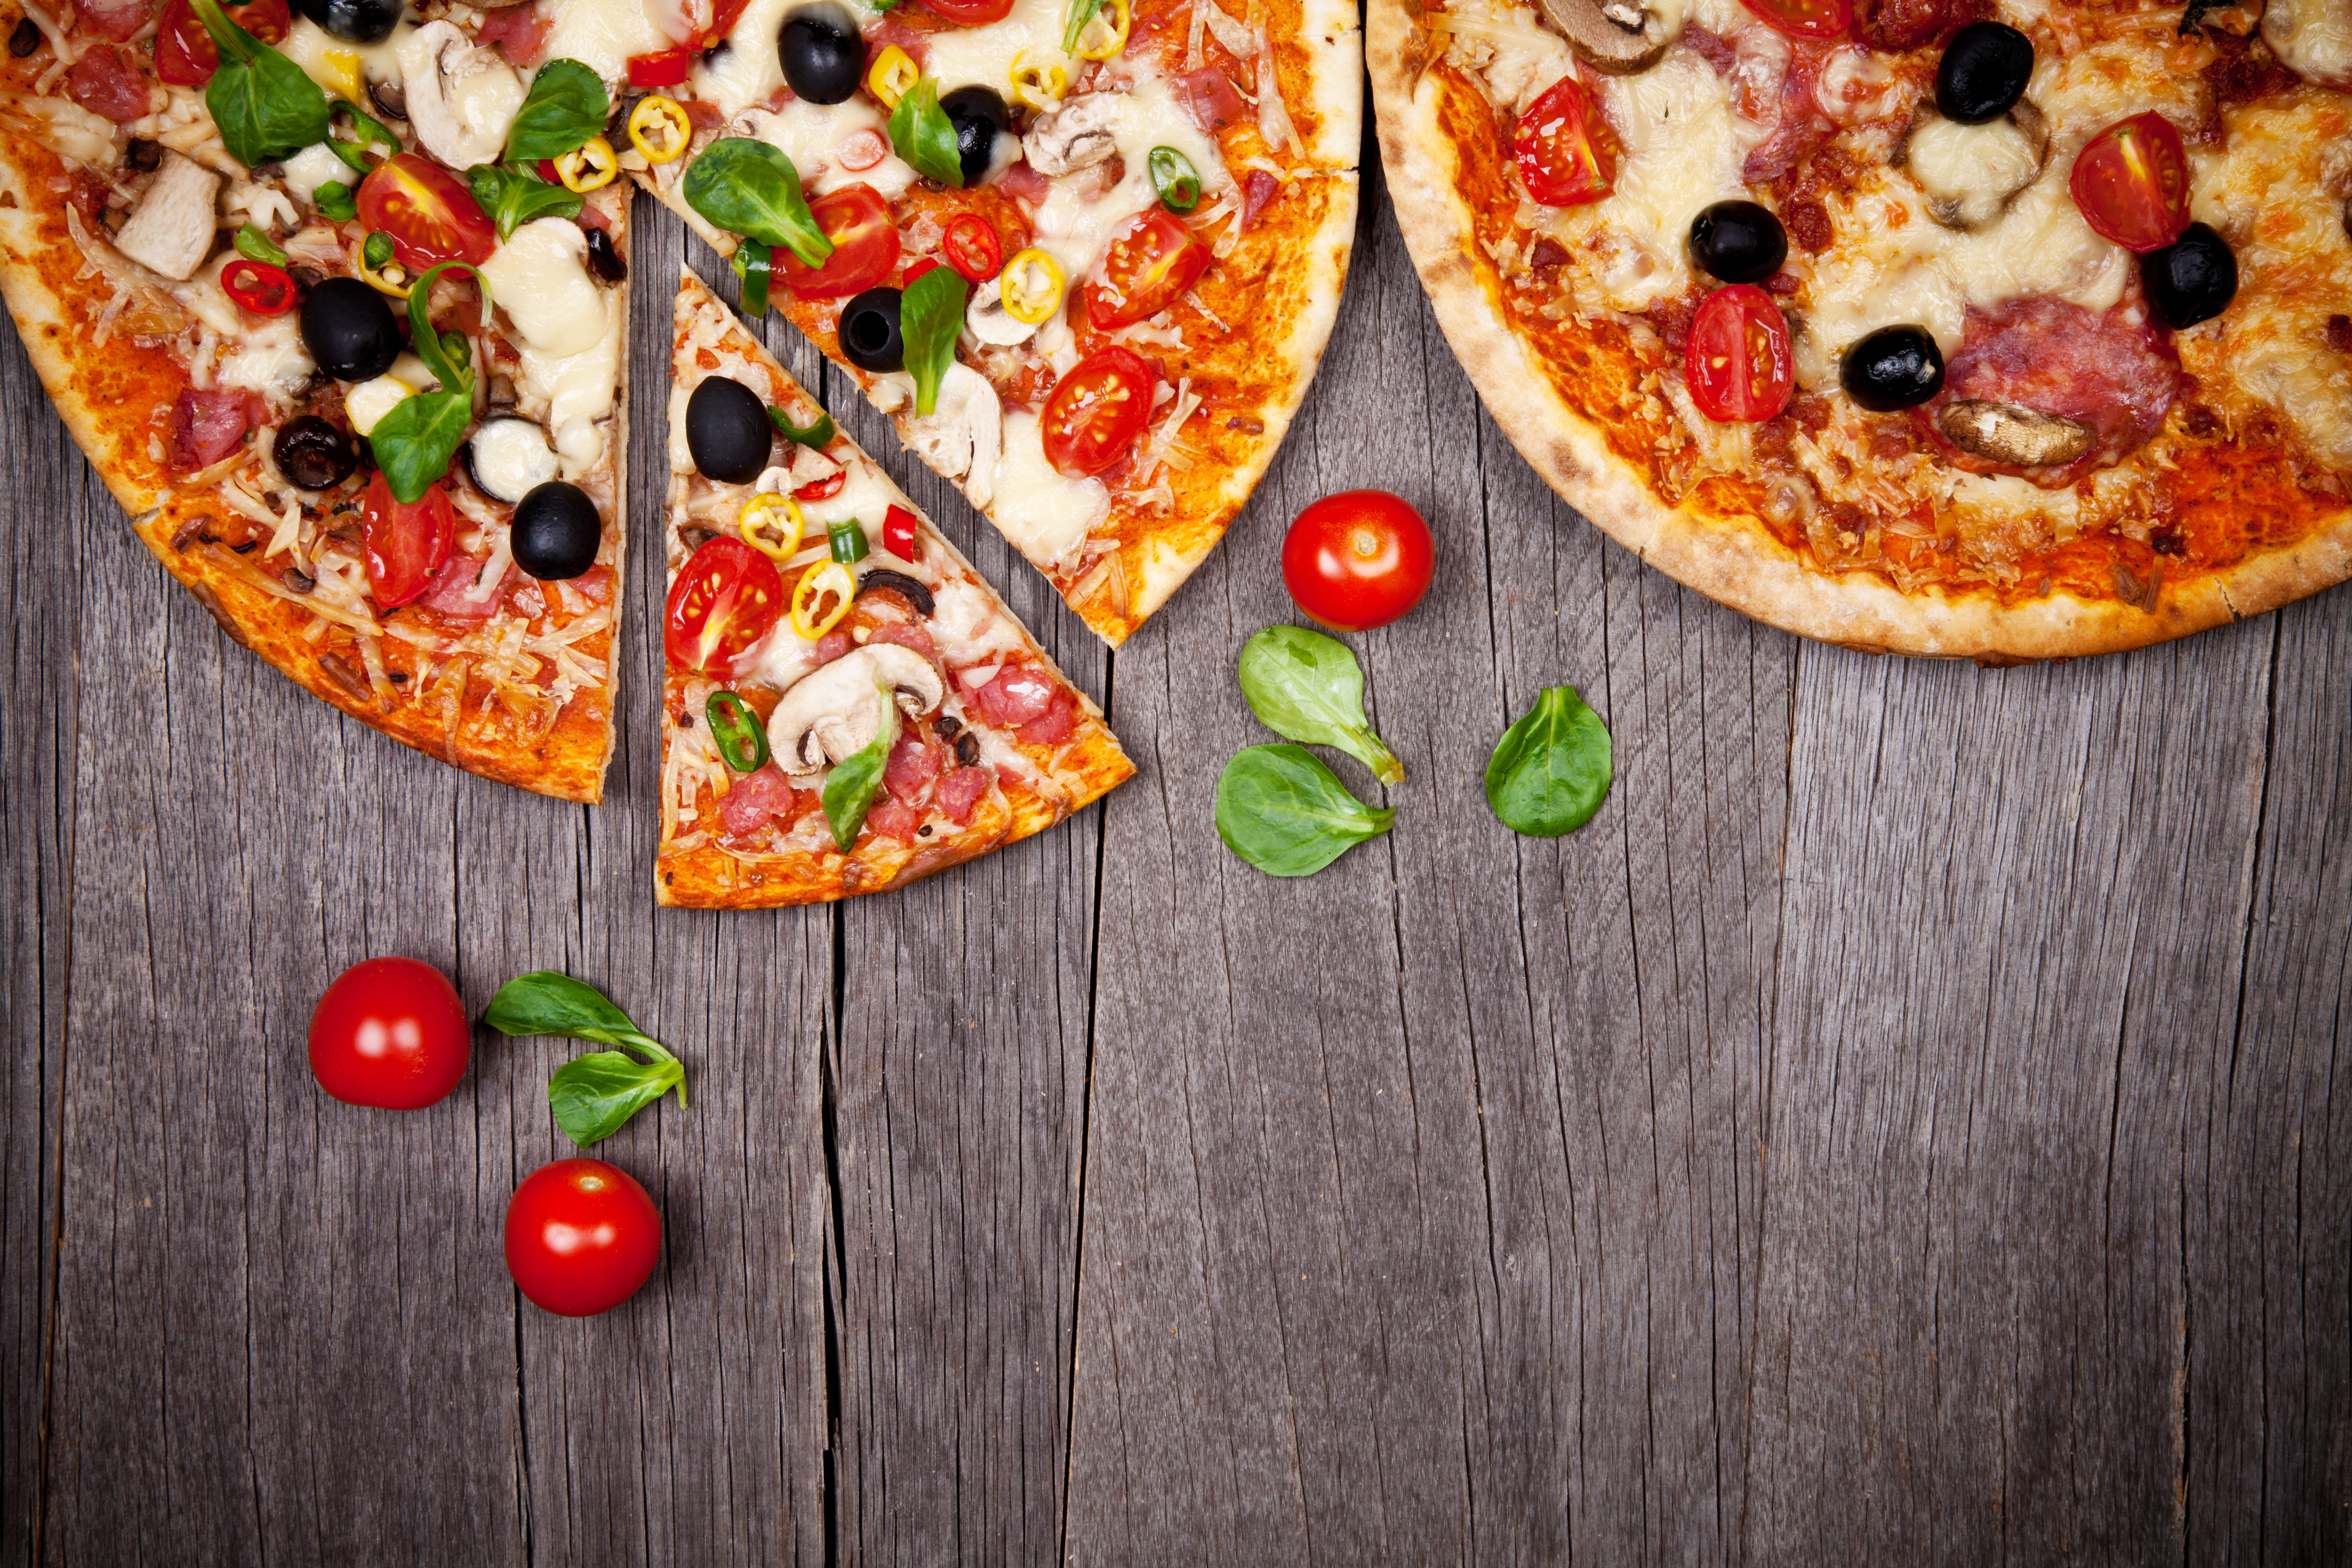 Italian Catering, Pizza Delivery, Local Pizza Restaurants, Order Pizza Online and Italian Restaurants in Miramar, FL